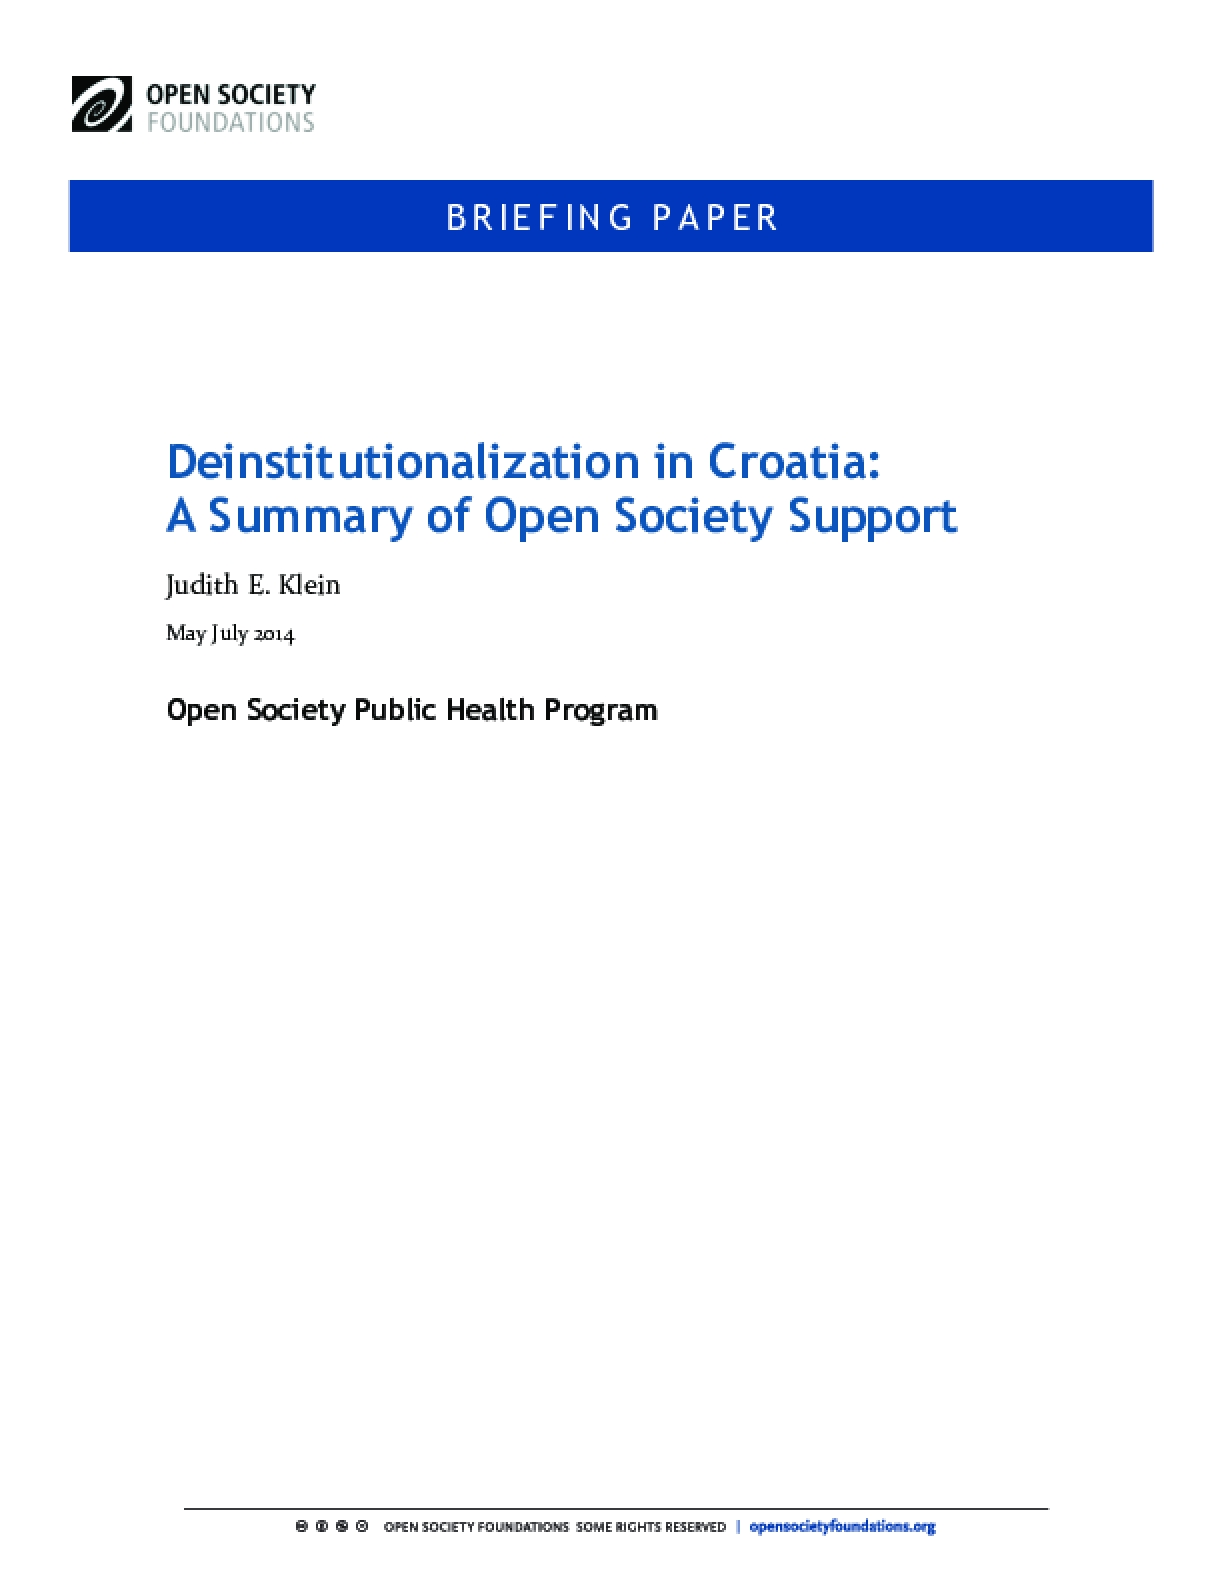 Deinstitutionalization in Croatia